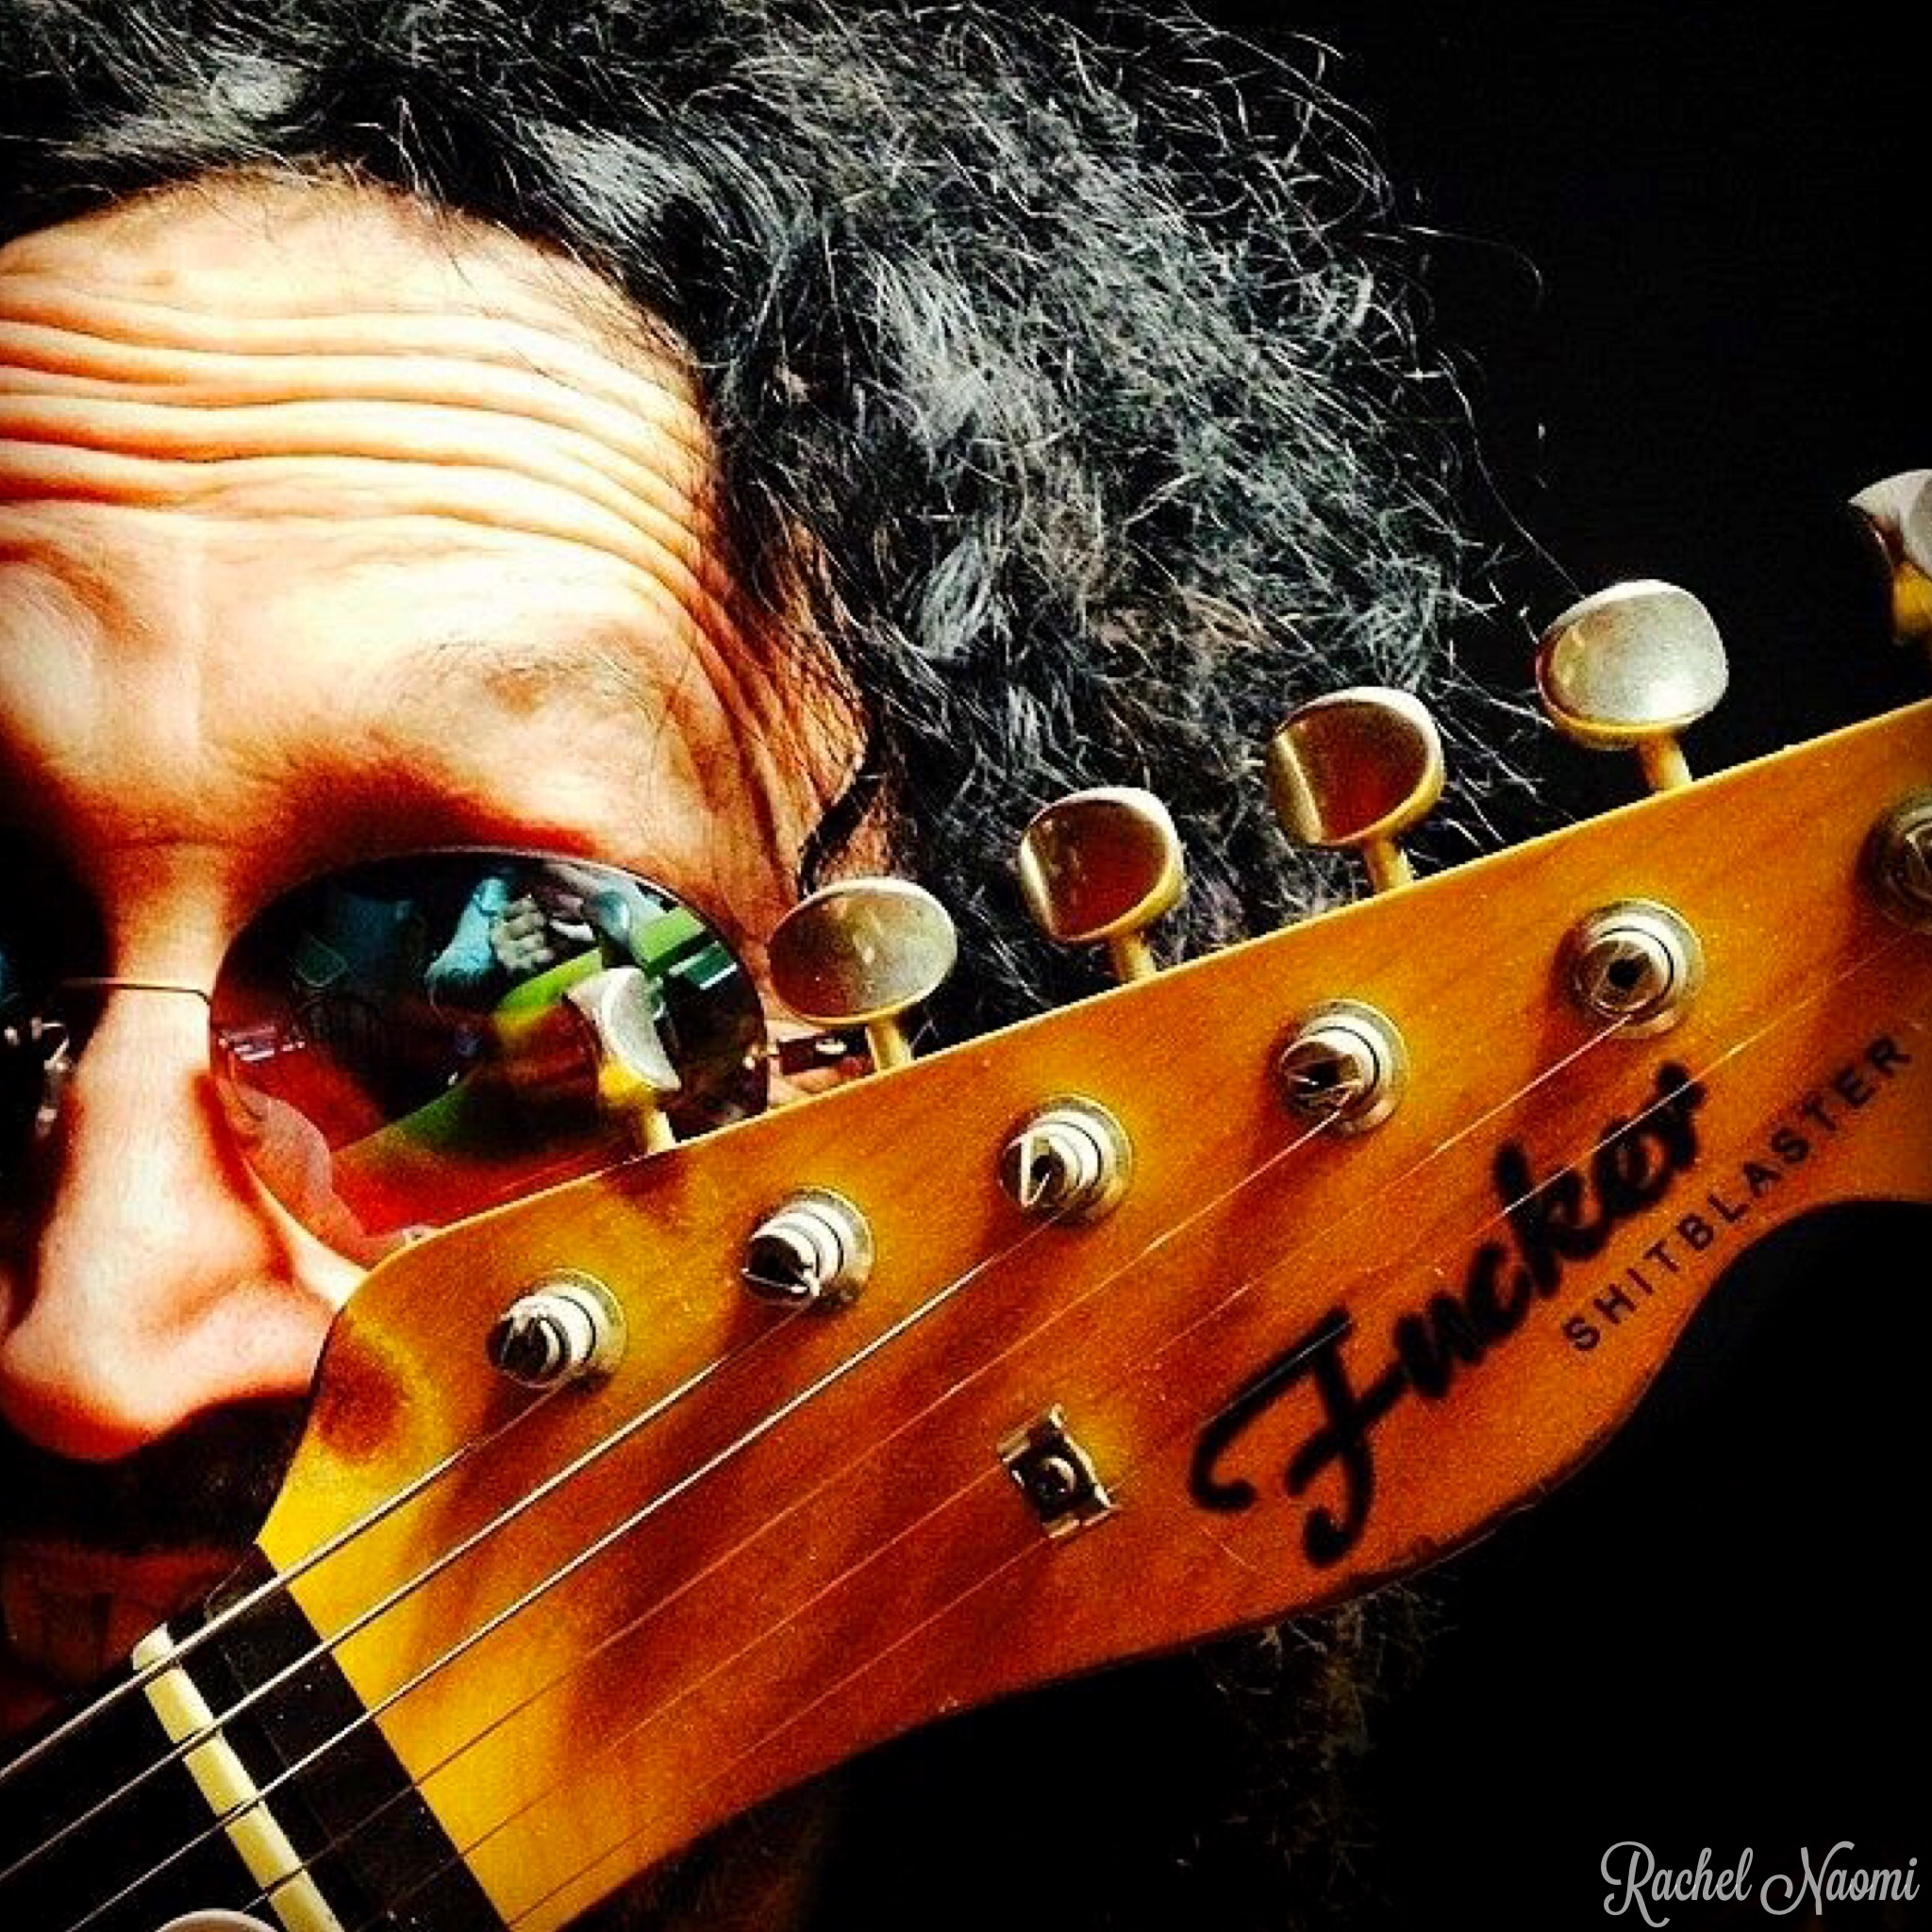 Mike Campbell, Los Angeles